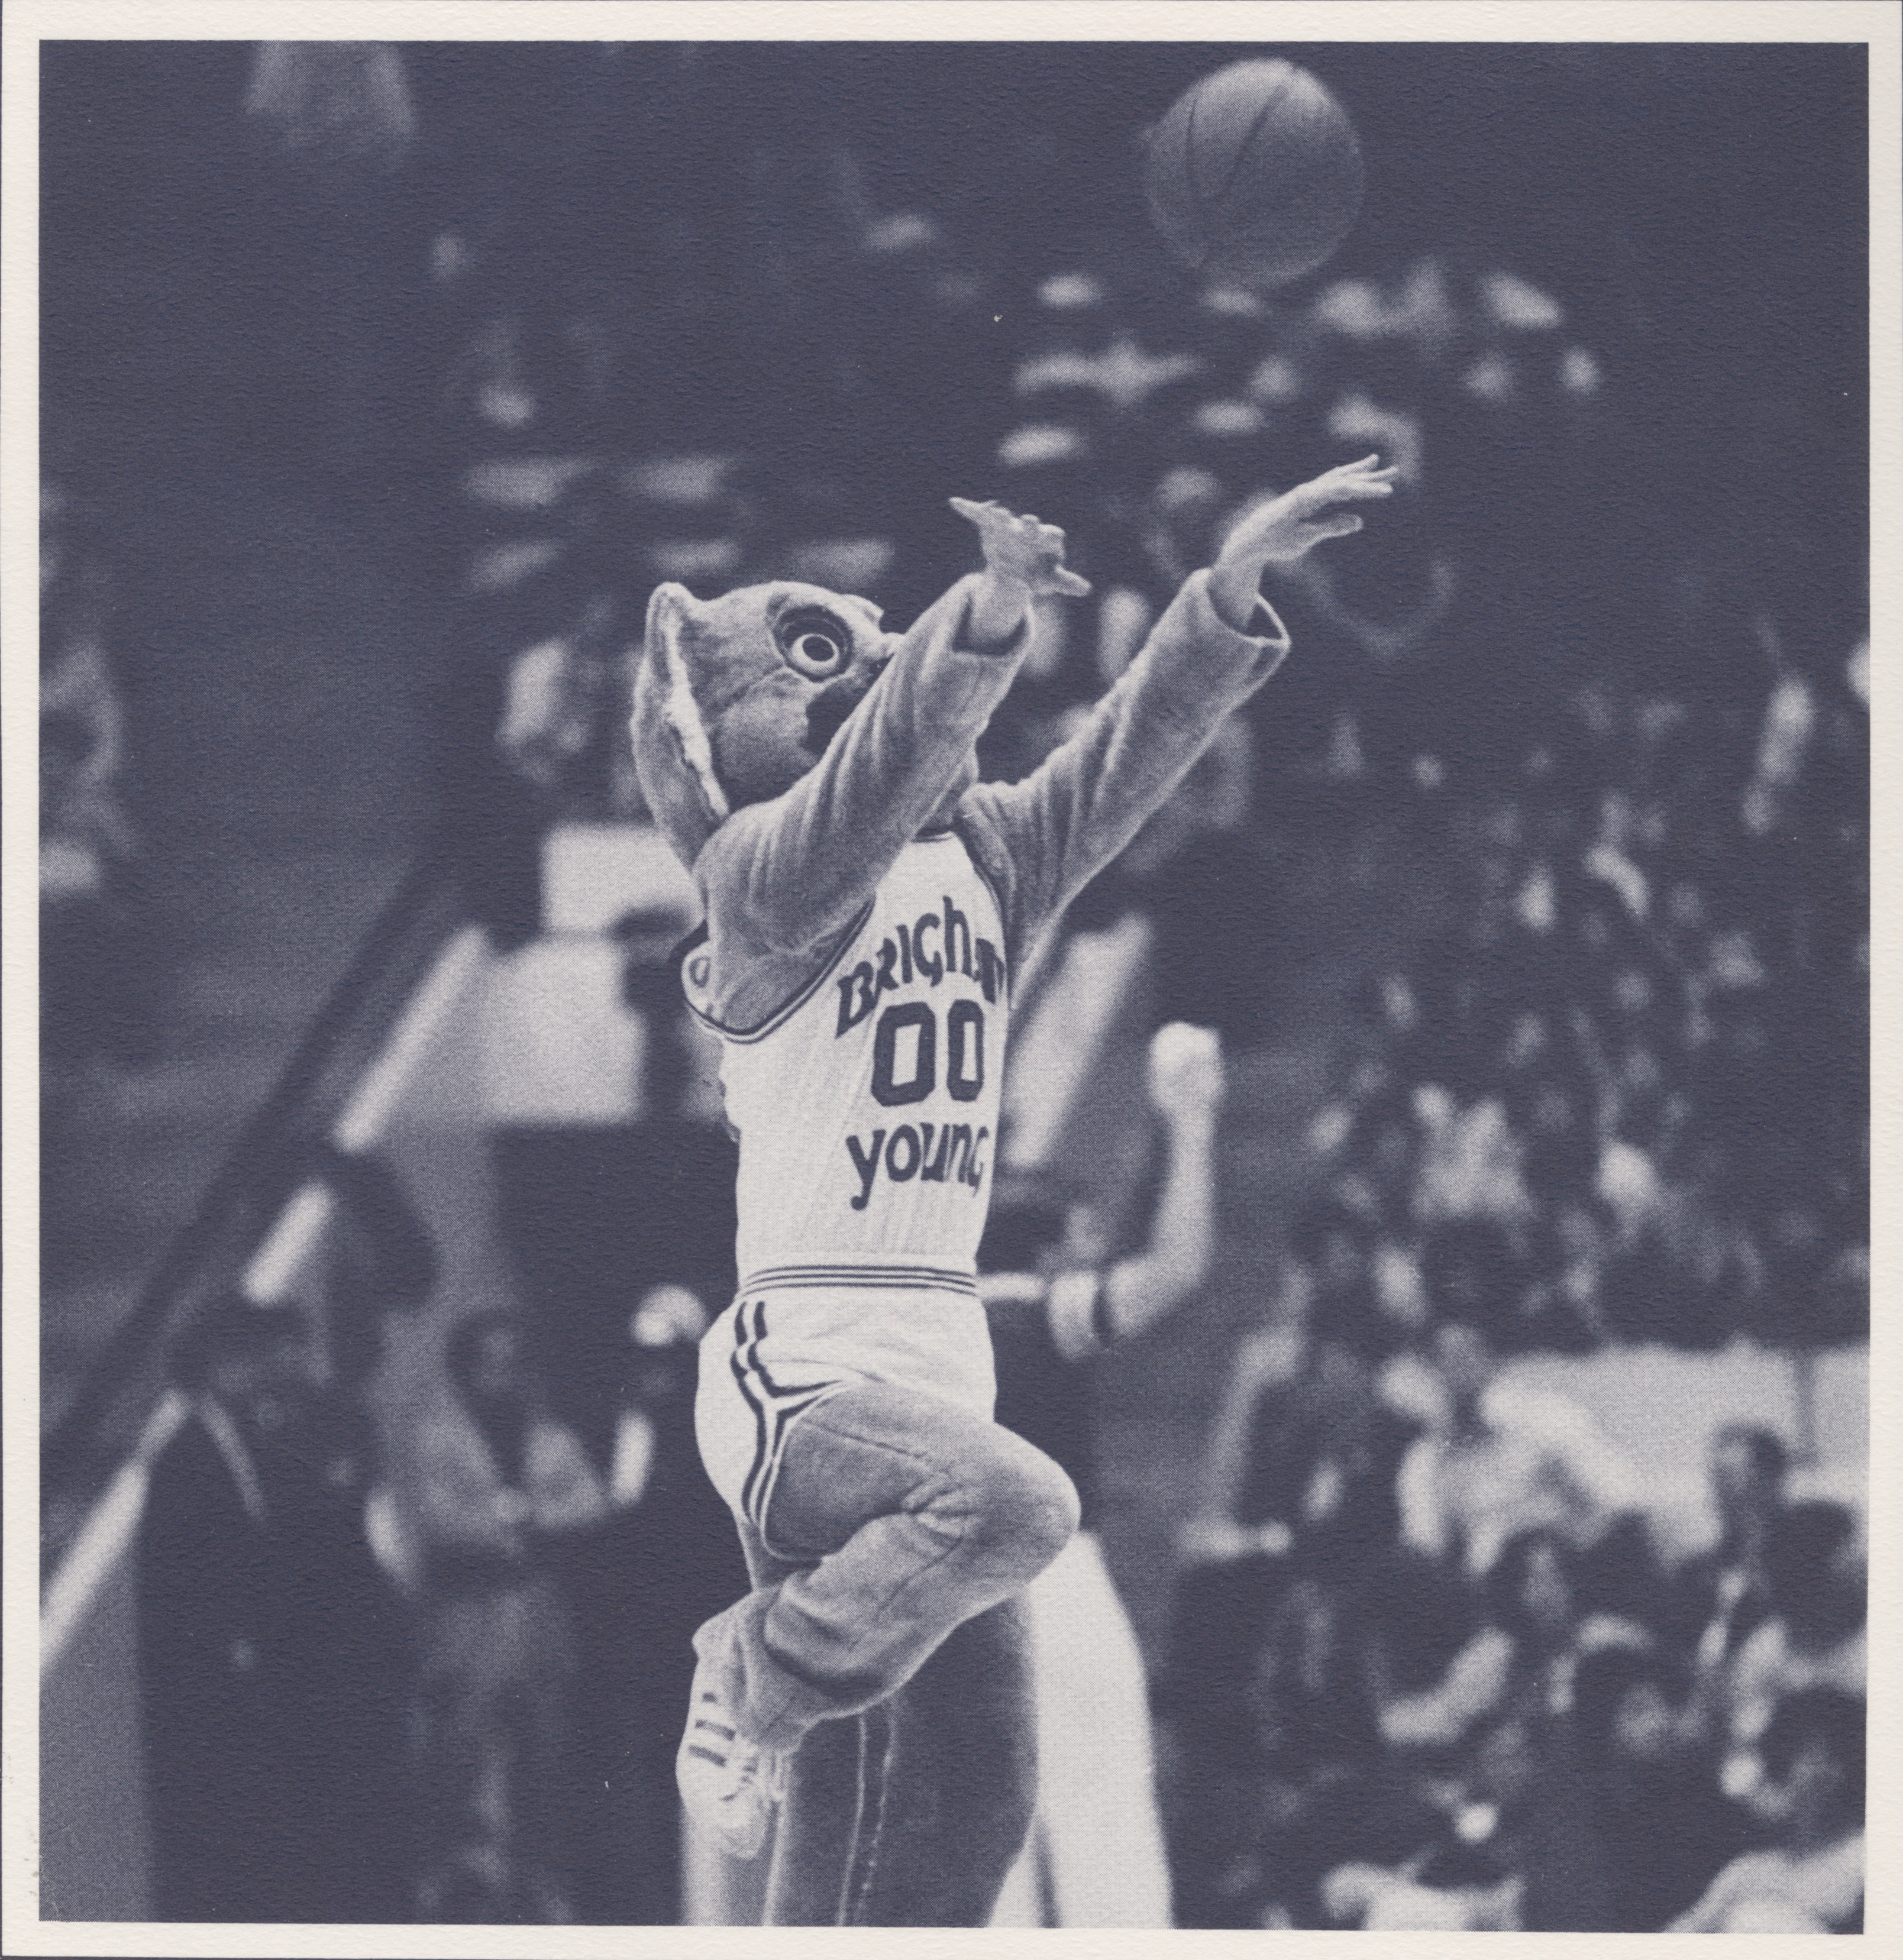 Cosmo takes a half-court shot during a game in the 1980-81 basketball season. Cosmo is an entertainer at any appearance he makes. (L. Tom Perry Special Collection)